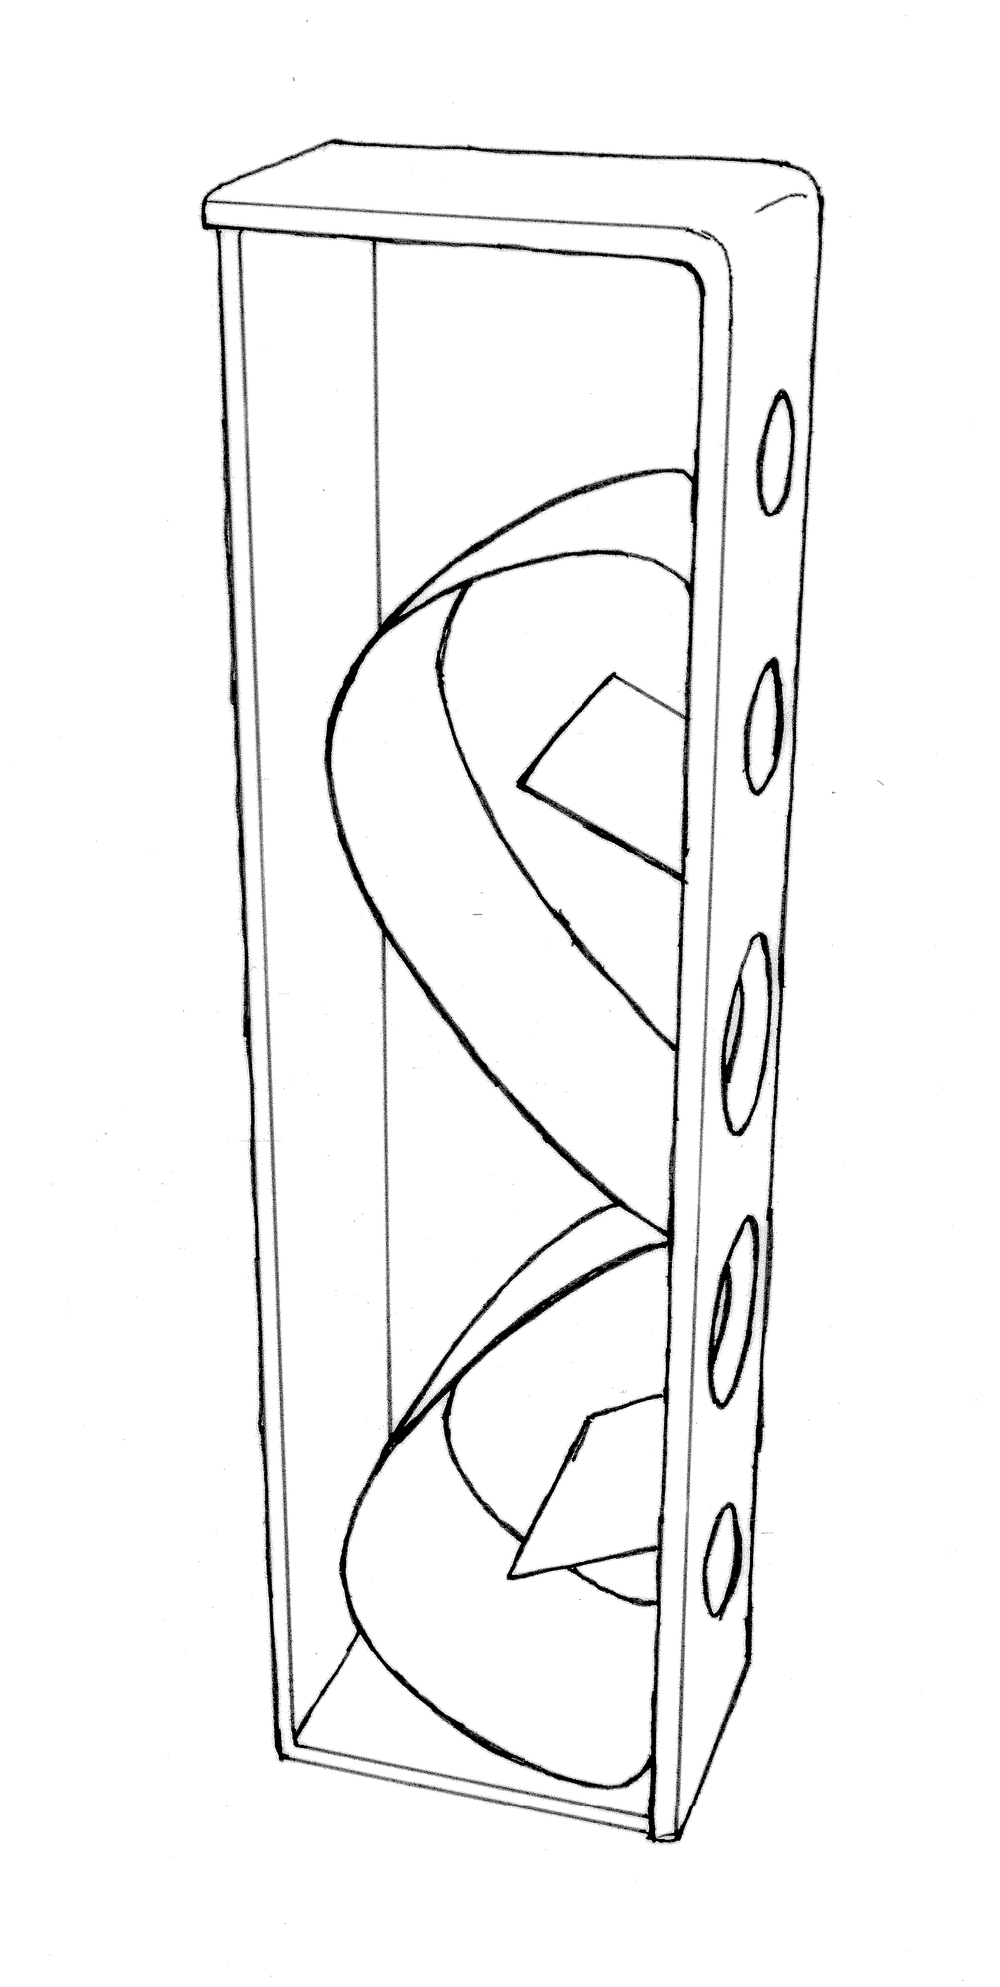 Pilot loudspeaker system of original design, incorporating research in acoustics, audio electronics, and industrial design. Interior engineering includes tapered, curvilinear wave channels to port rear driver energy, extending response while limiting problematic standing wave resonance. Handcrafted cherry enclosure. 38Hz-40kHz ±3dB. Dimensions: 30cm (w) x 145cm (h) x 40cm (d).